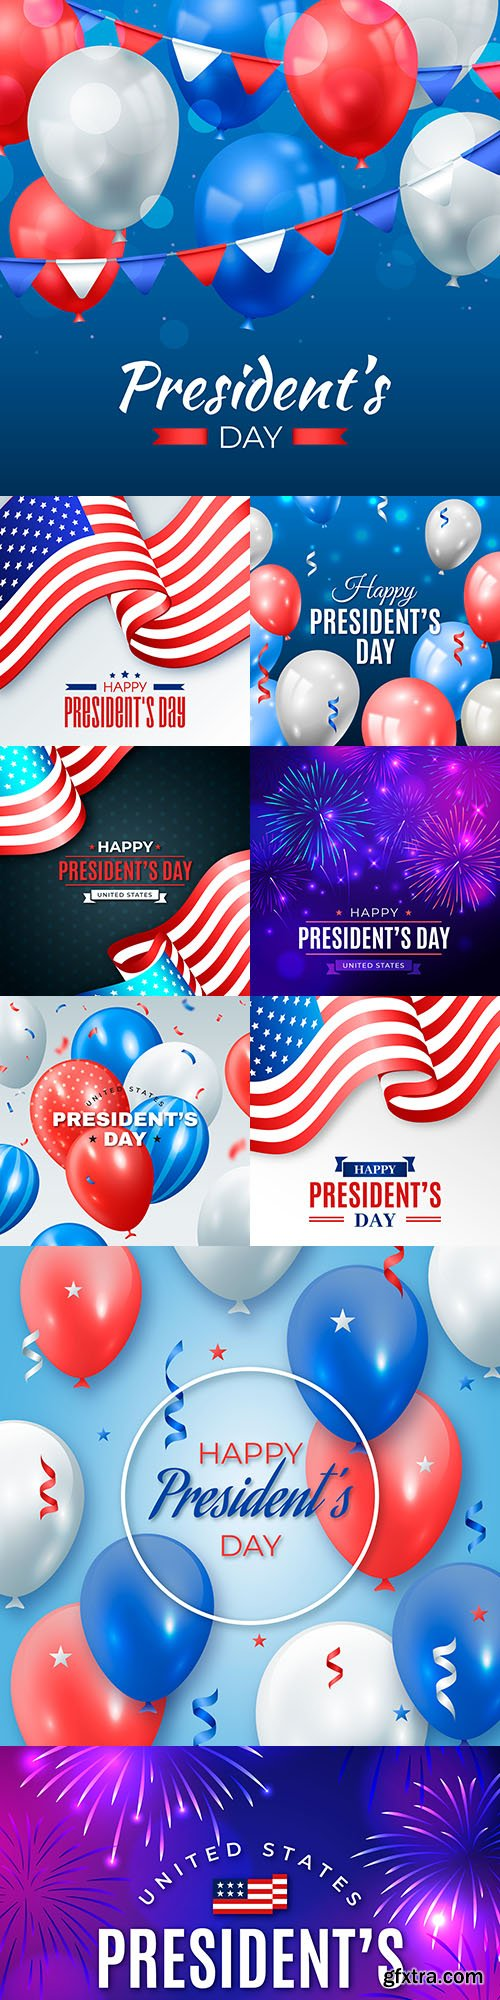 Happy President's Day decorative illustrations 4